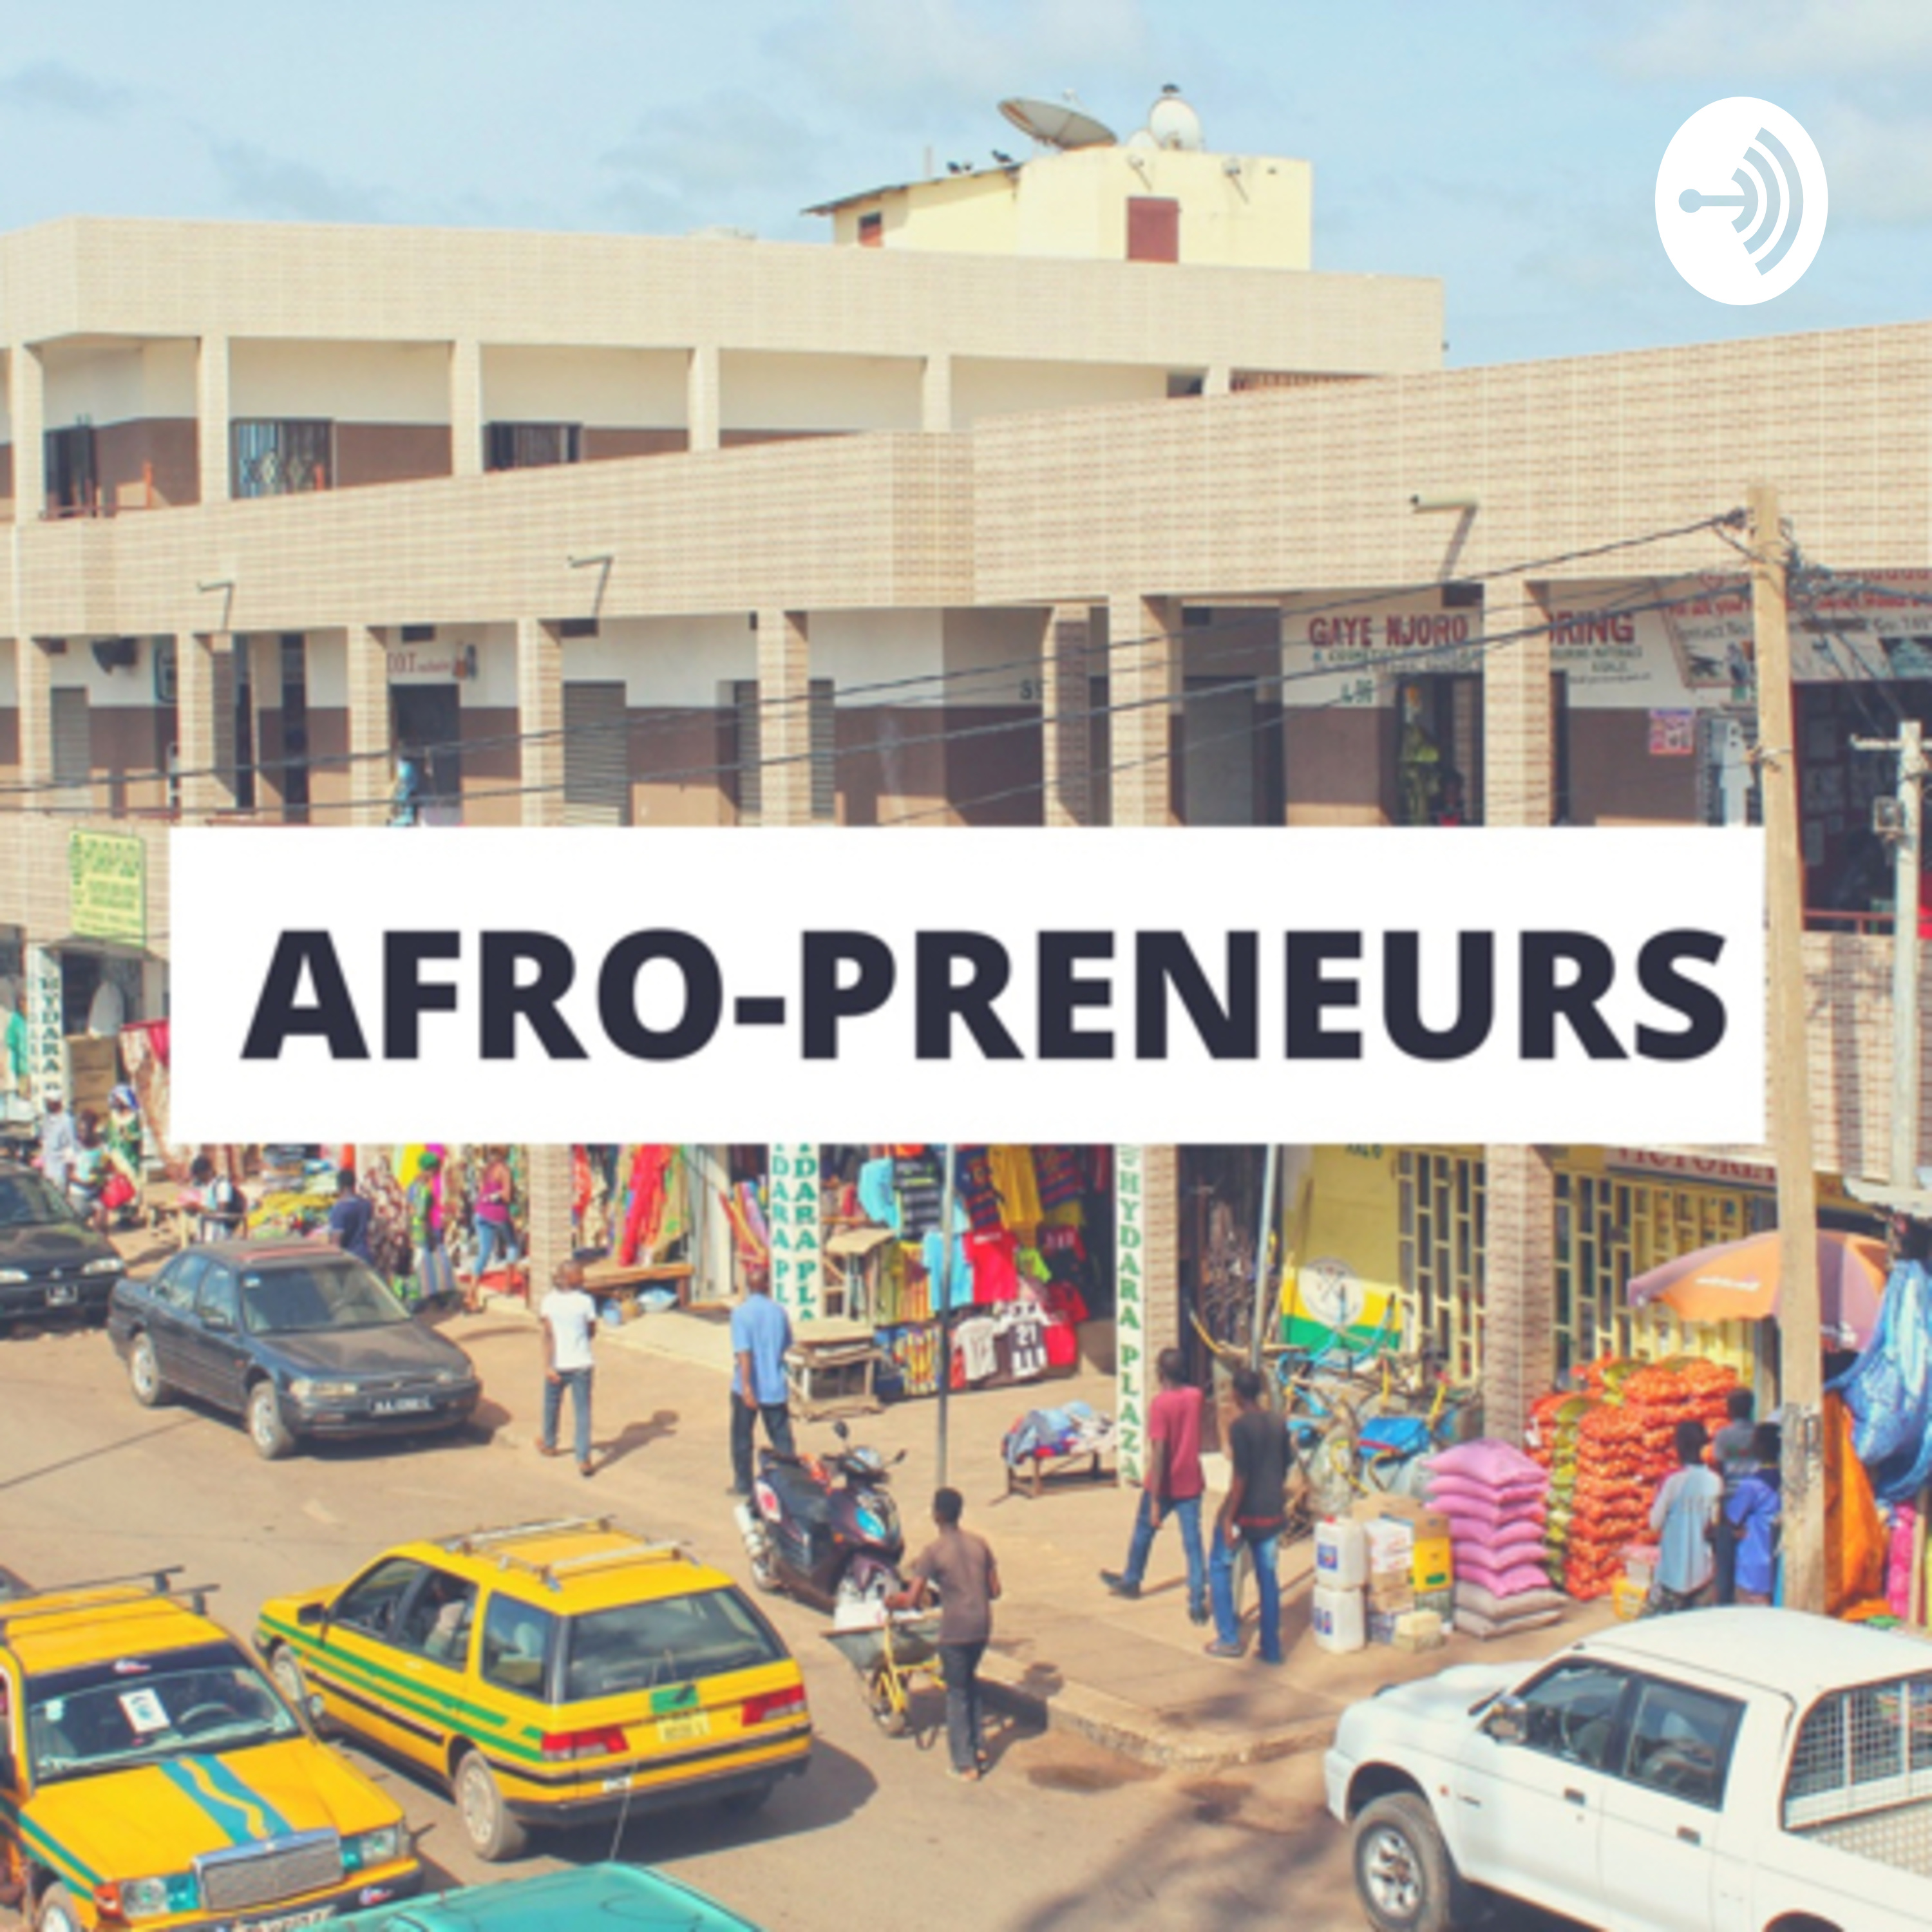 Episode 11: Africa's Brain Drain